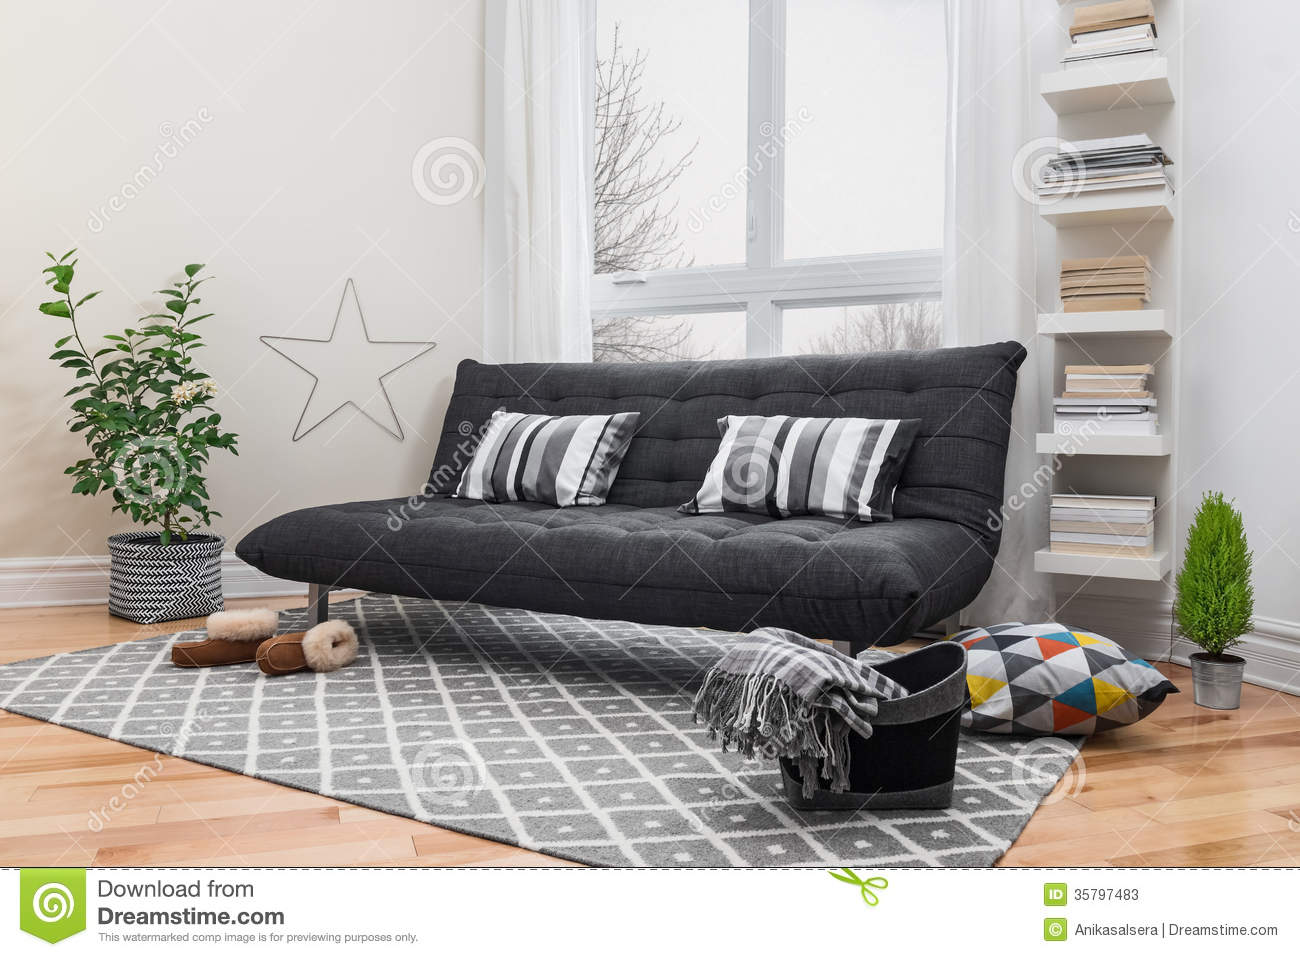 Spacious living room with modern decor stock photos image 35797483 for Modern decor for living room